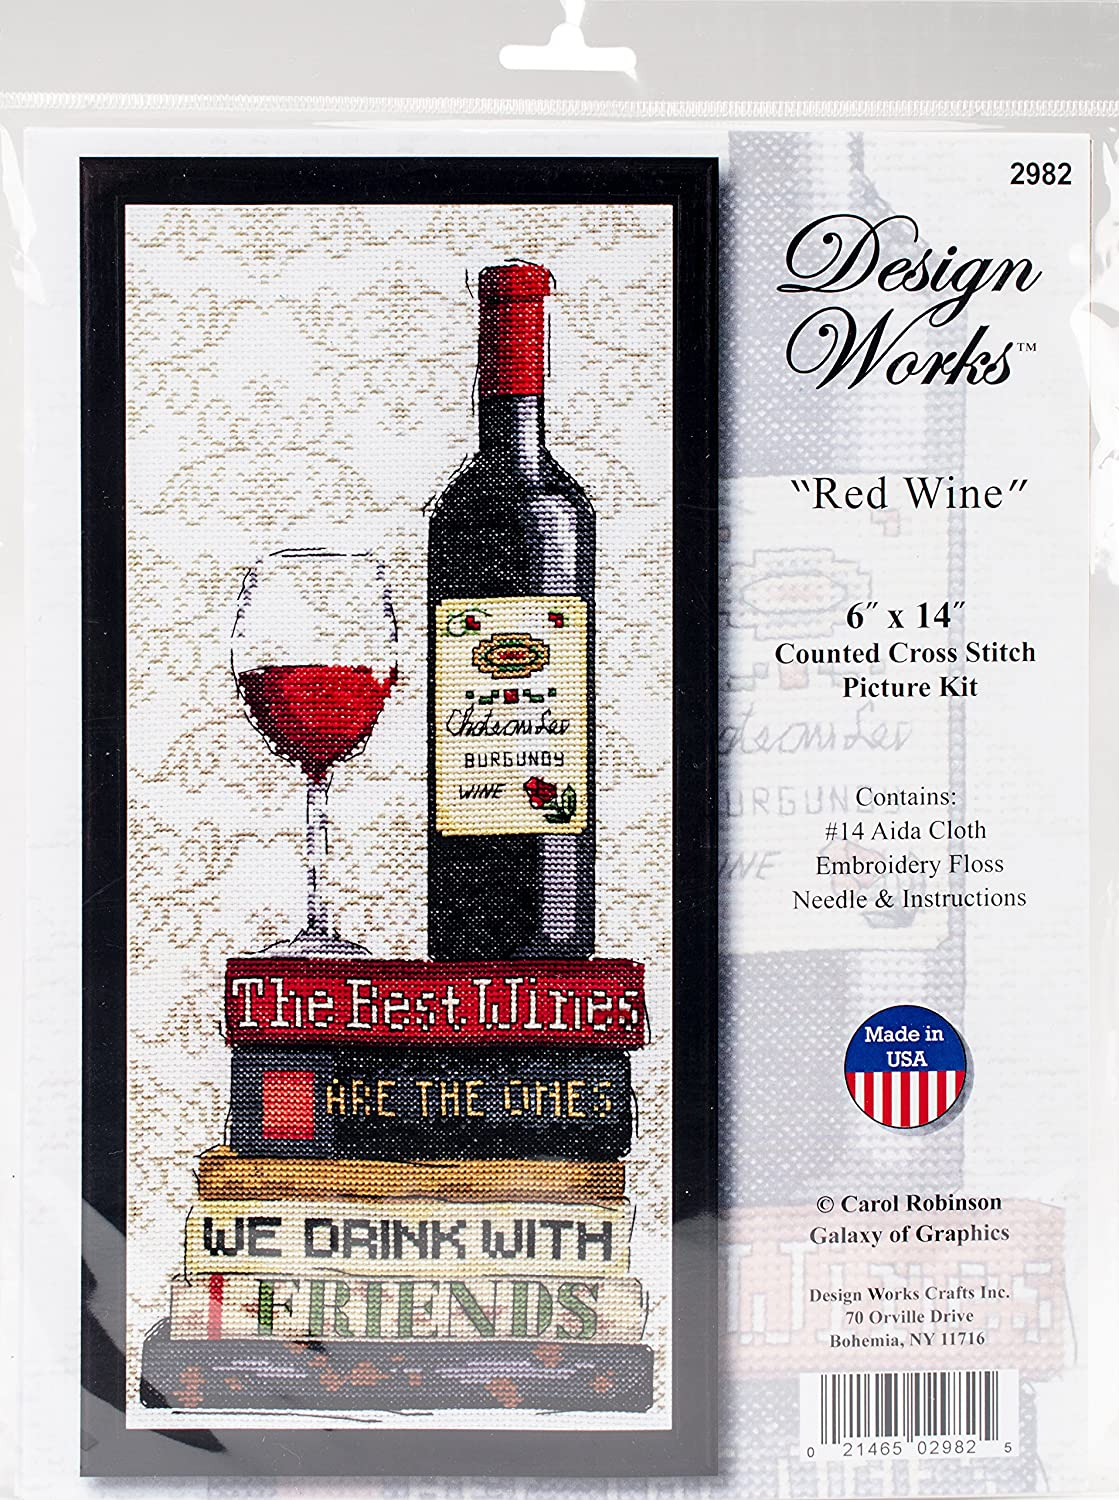 Design Works Counted Cross Stitch Kit 6 x 14 ~ RED WINE #2982